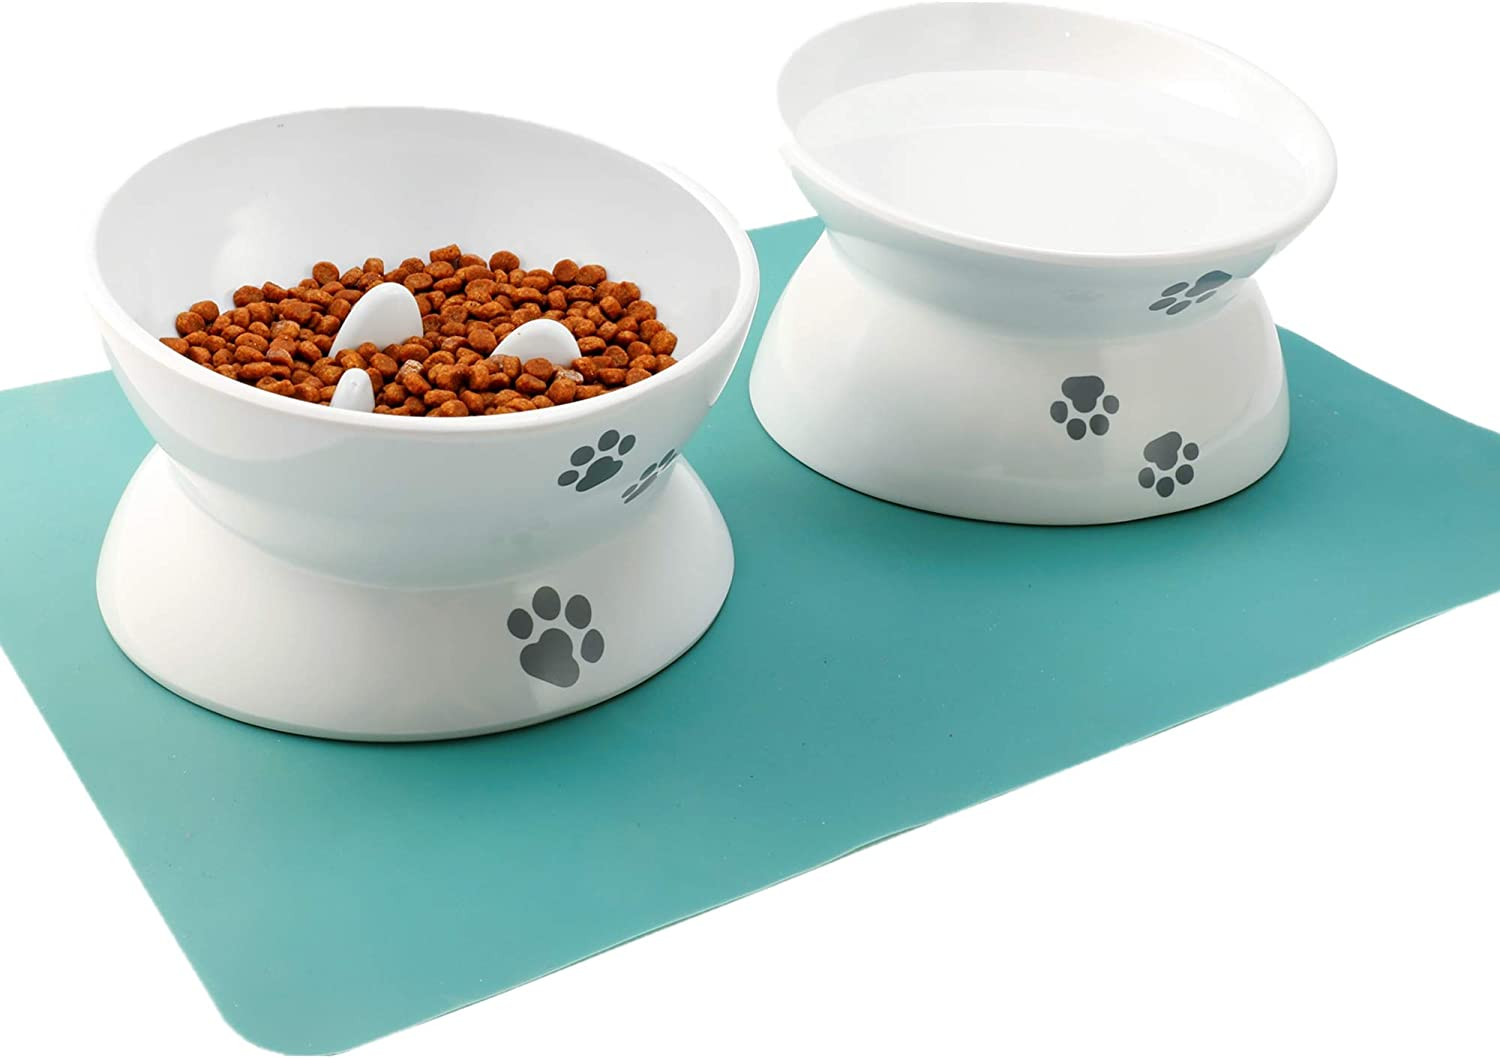 Raised Cat Bowl Elevated Slow Feeder No Spill Melamine Stress Free Pet Feeder and Waterer,Backflow Prevention, Gift for Cat